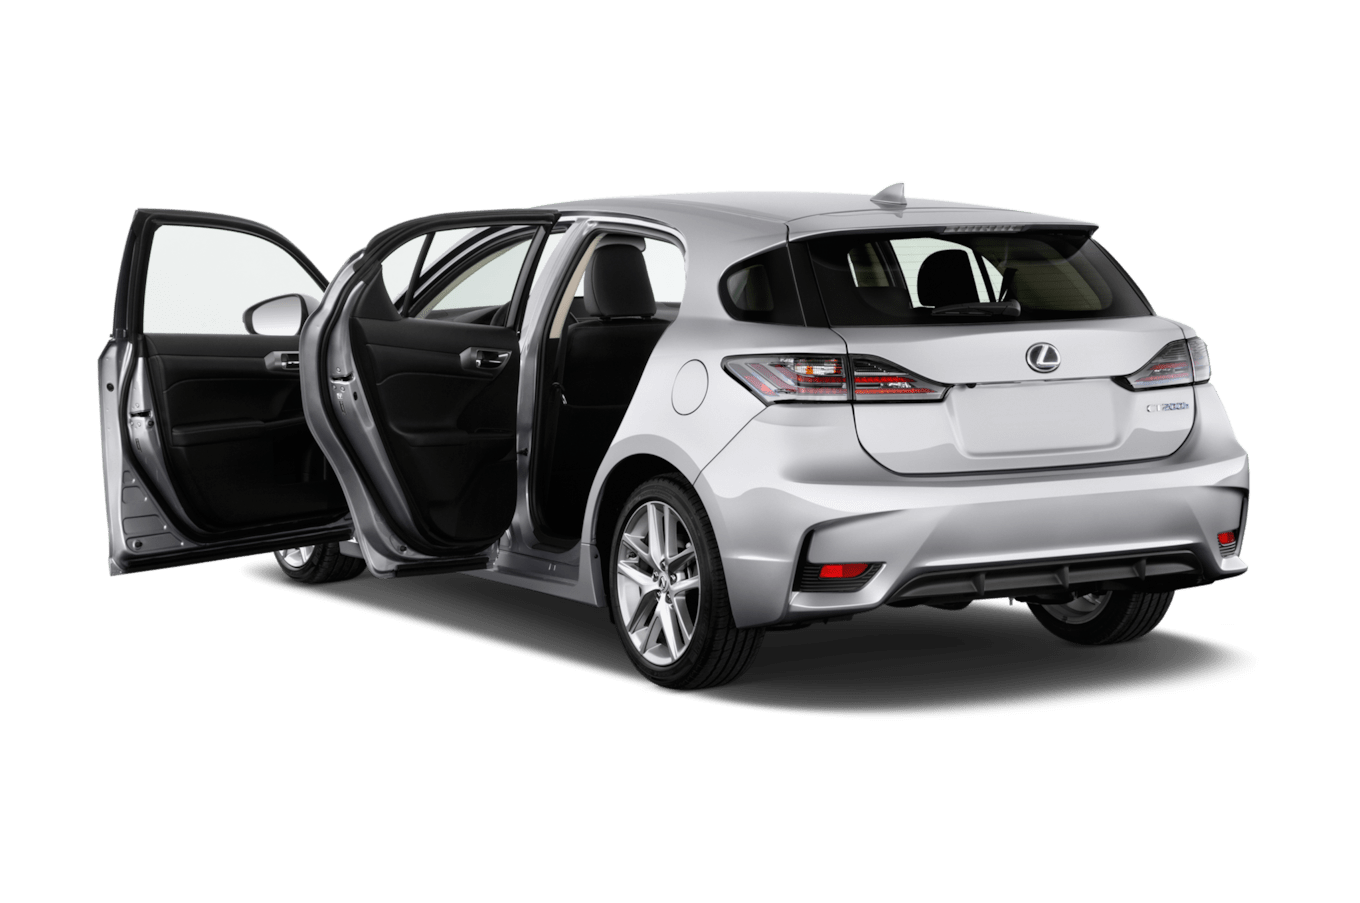 2014 Lexus CT 200h Reviews and Rating